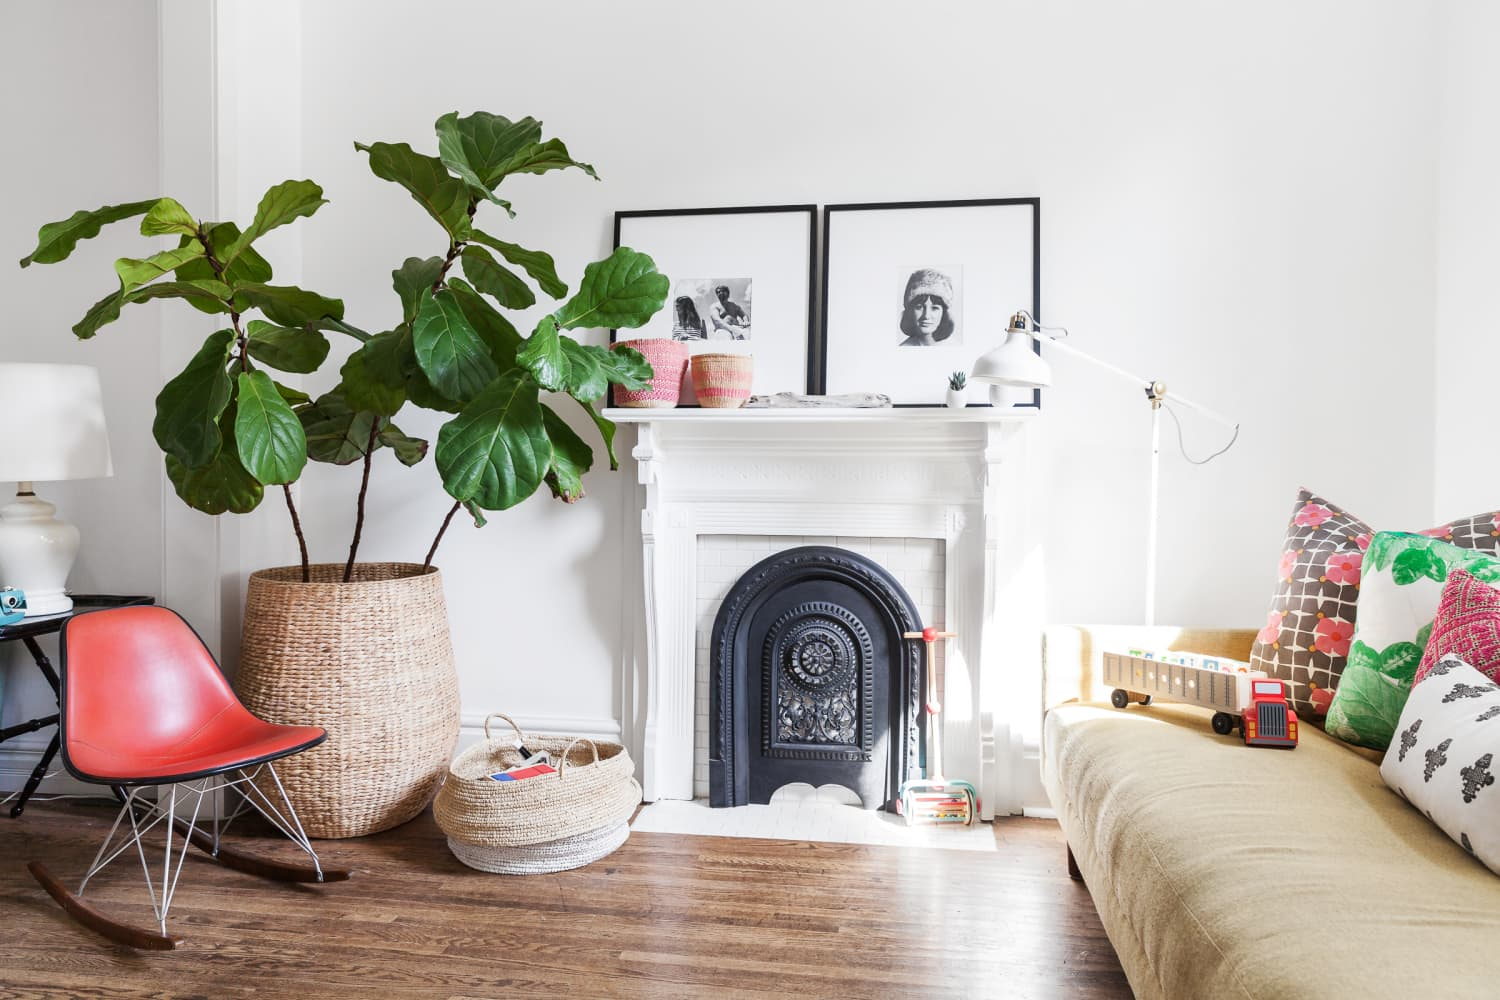 5 of the Best XXL Houseplants to Splurge on for Big-Impact Style